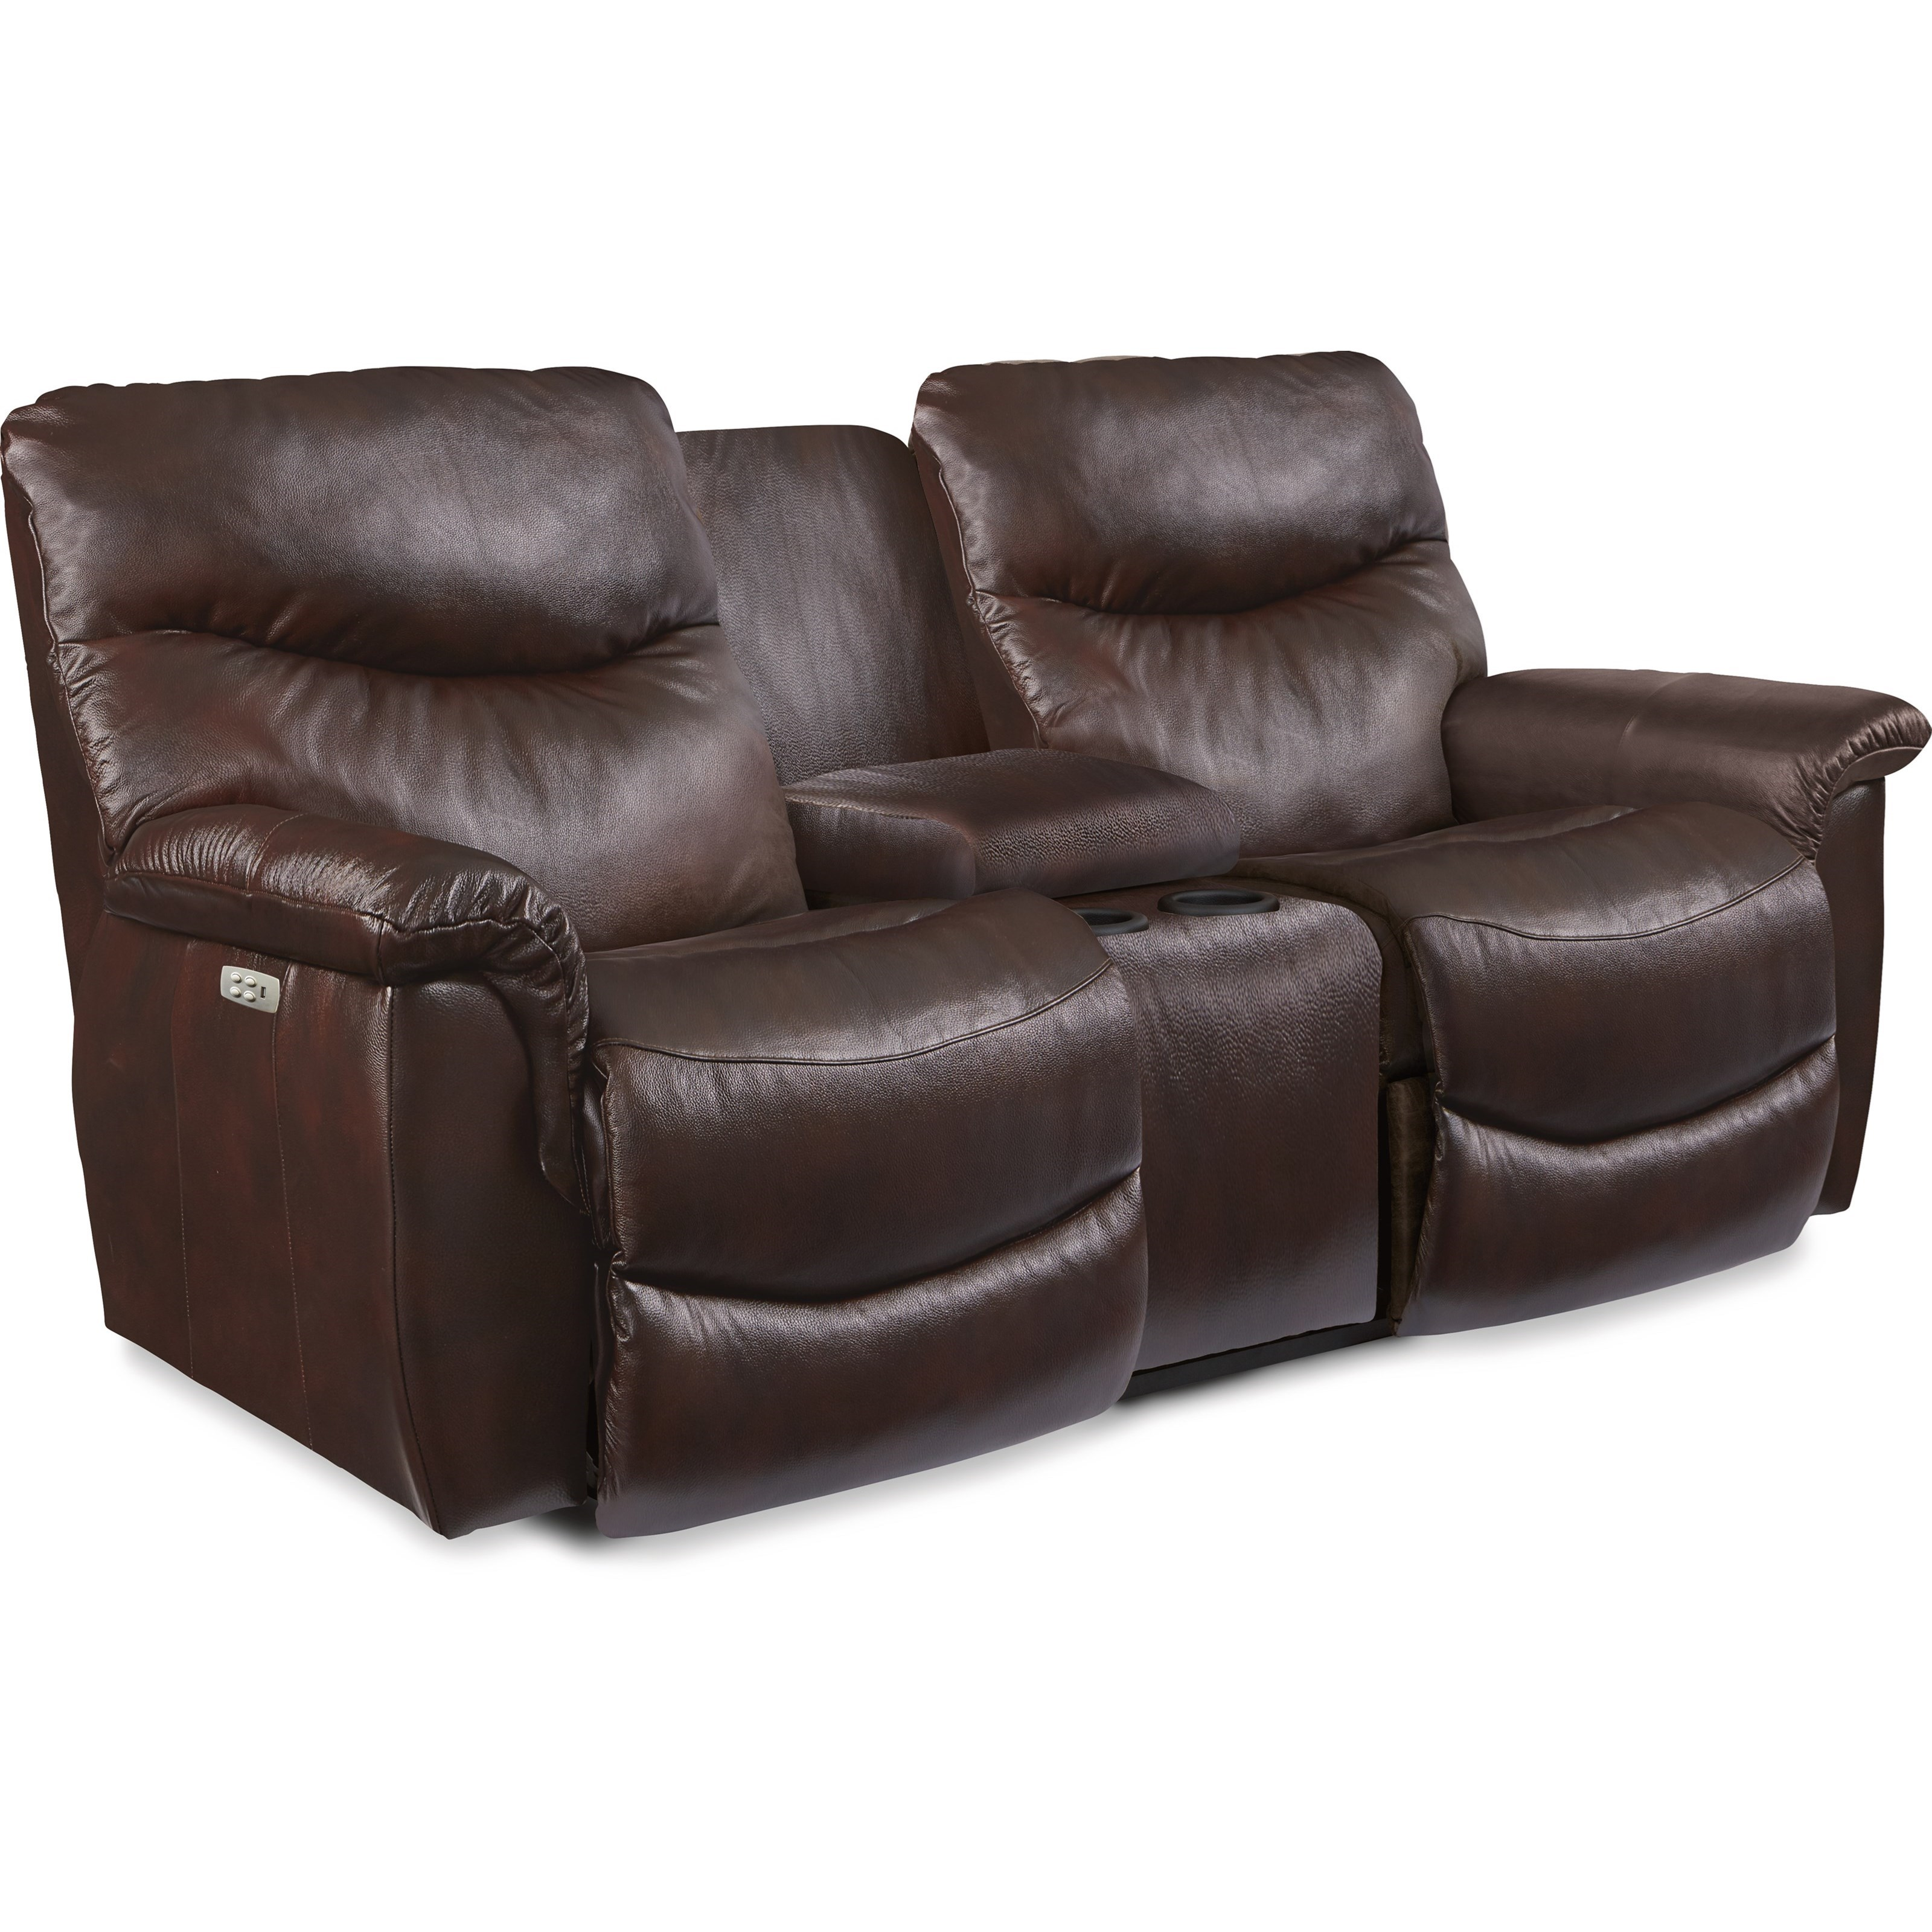 James Power Reclining Loveseat with Console by La-Z-Boy at Johnny Janosik